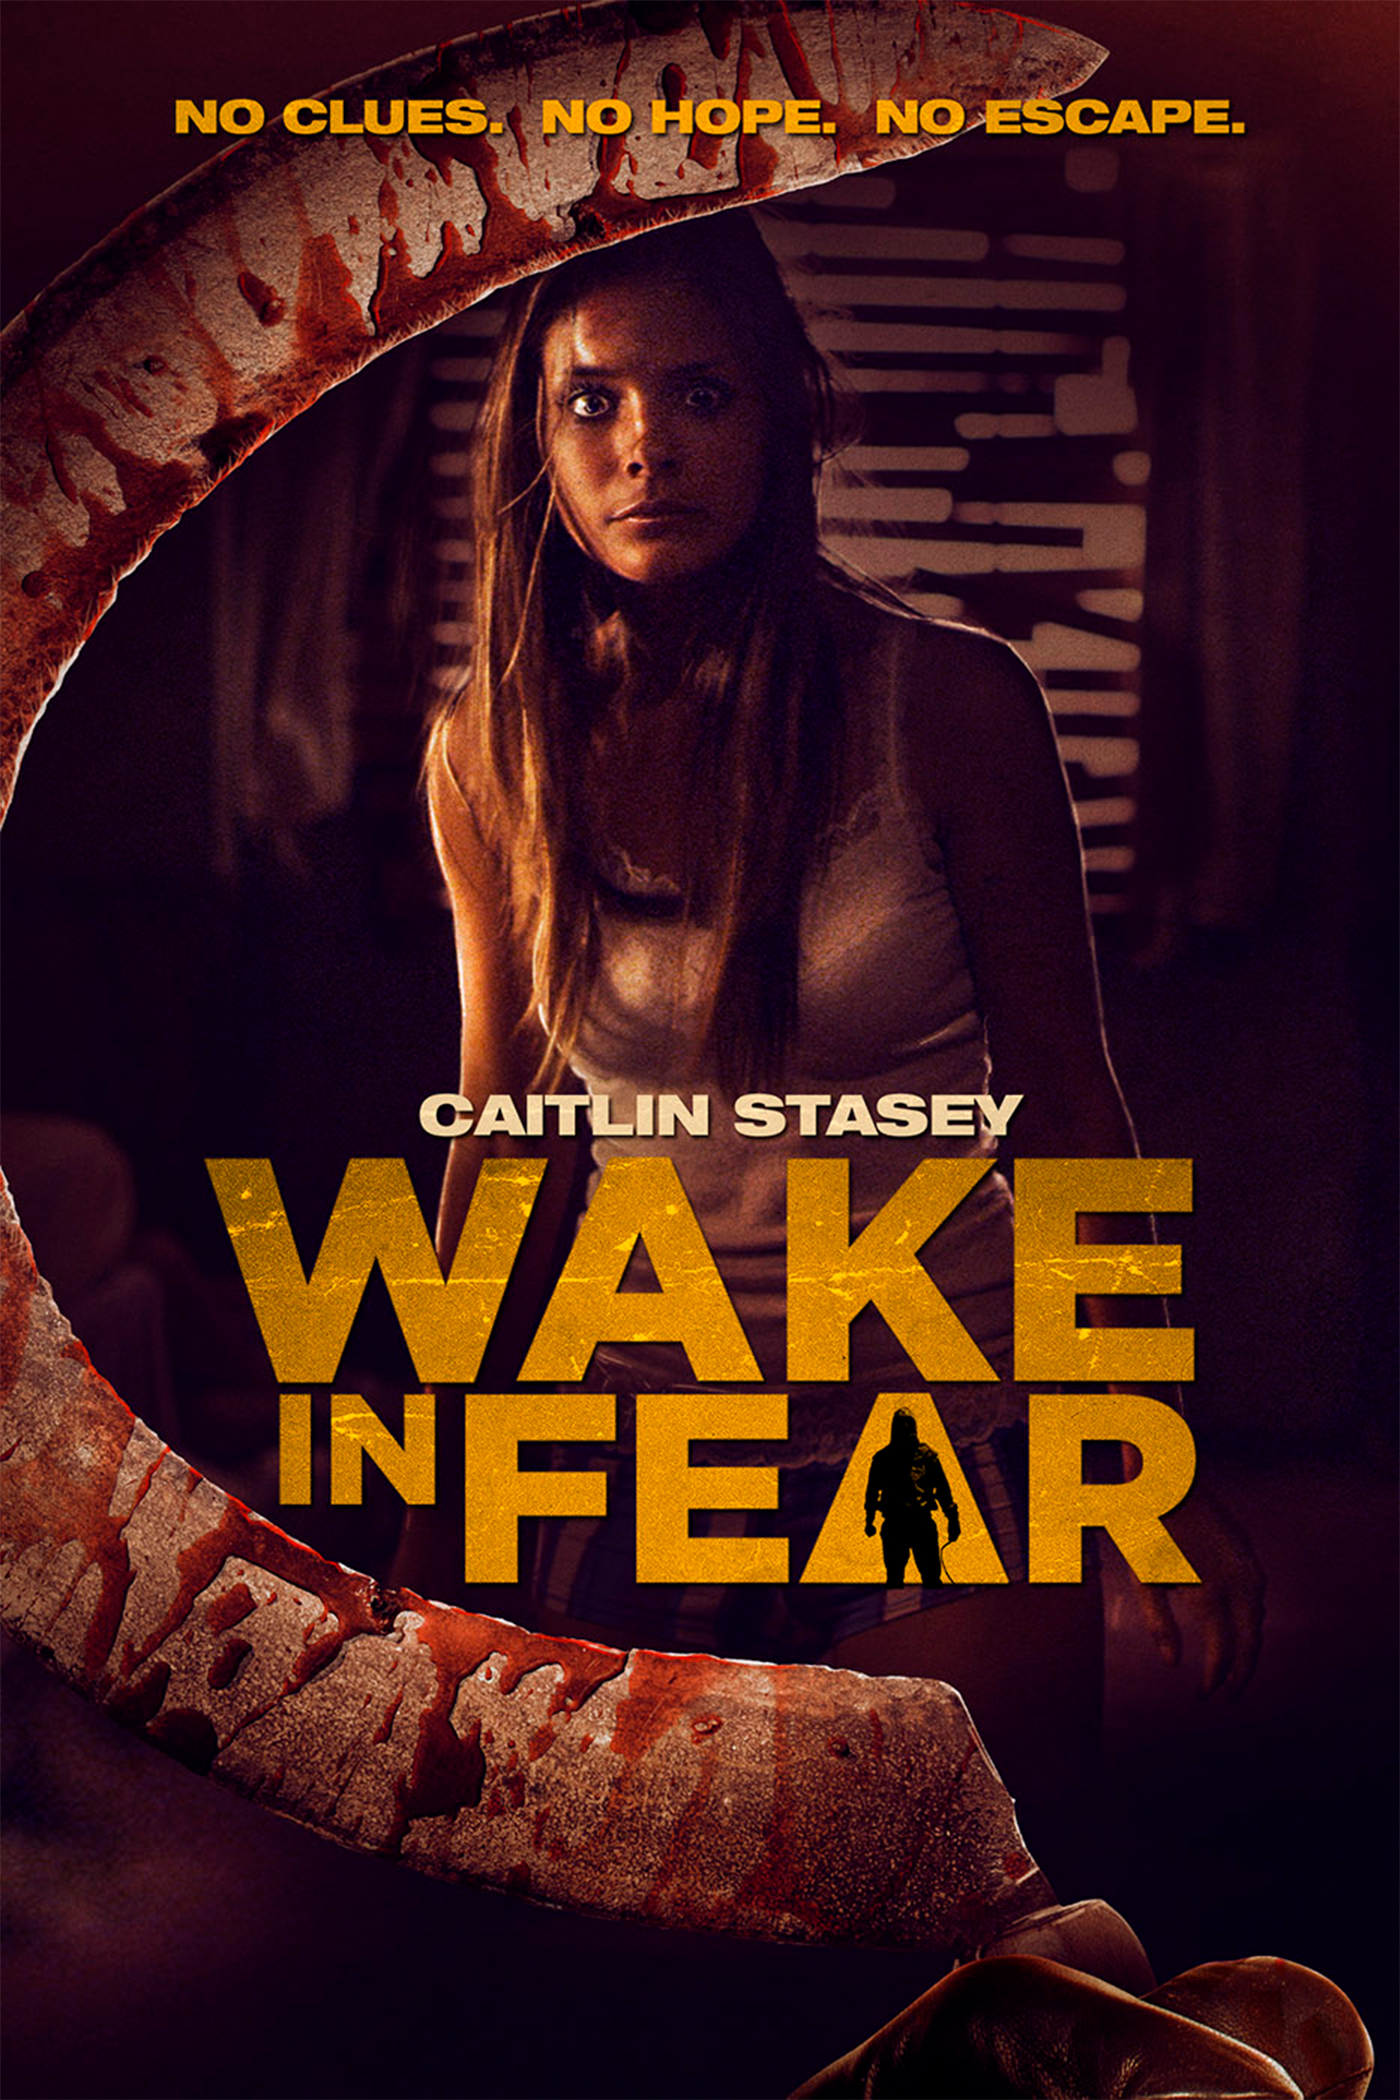 WAKE_IN_FEAR_Artwork